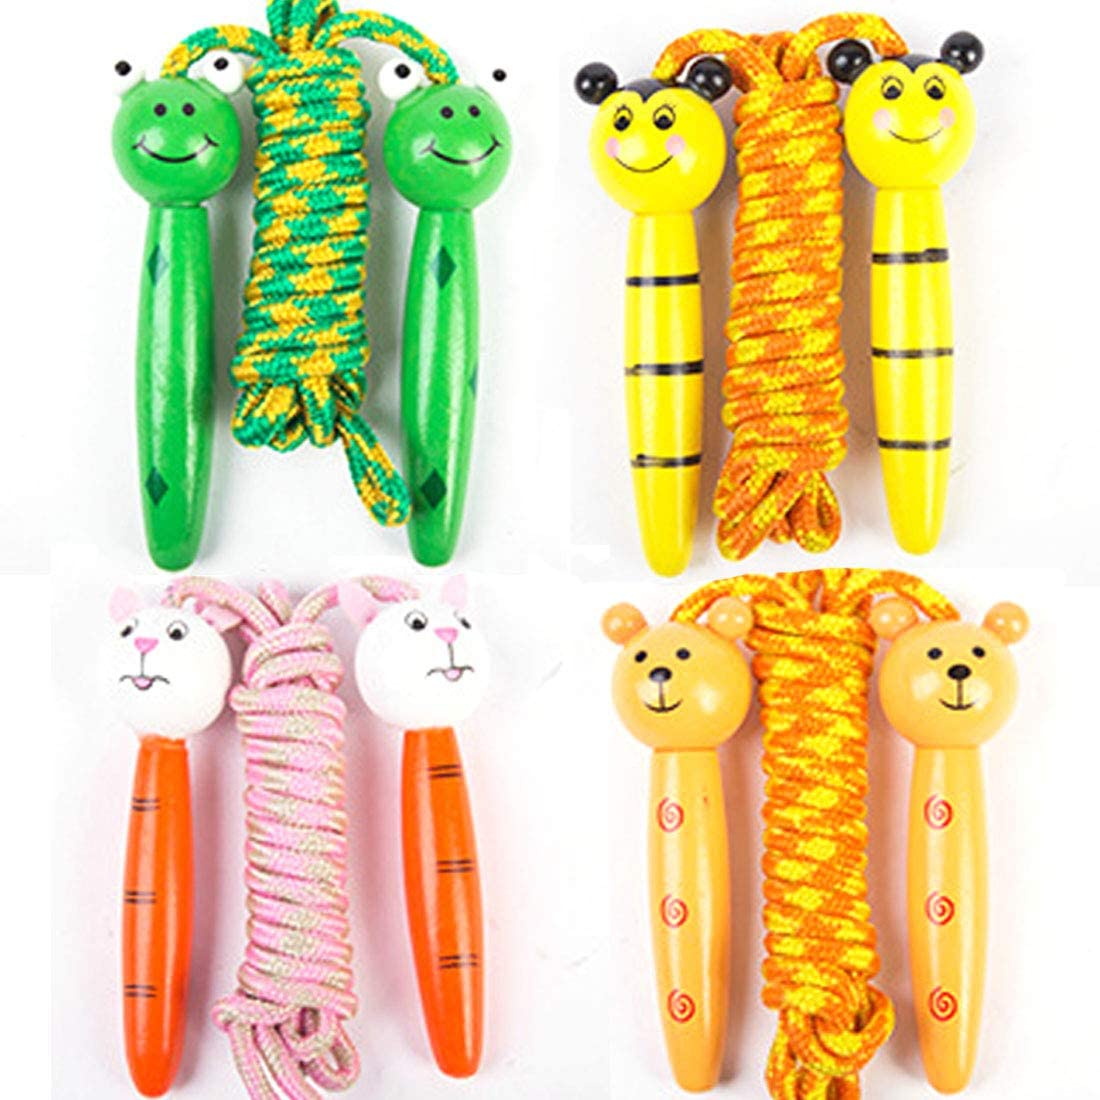 LiLiy 4 Pcs,Creative Children's Cartoon Animal Striped Wooden Cotton Rope Skipping Jumping, Colorful Adjustable Frog bee Bear Rabbit Children Sports Tool,Length 78.74 inch